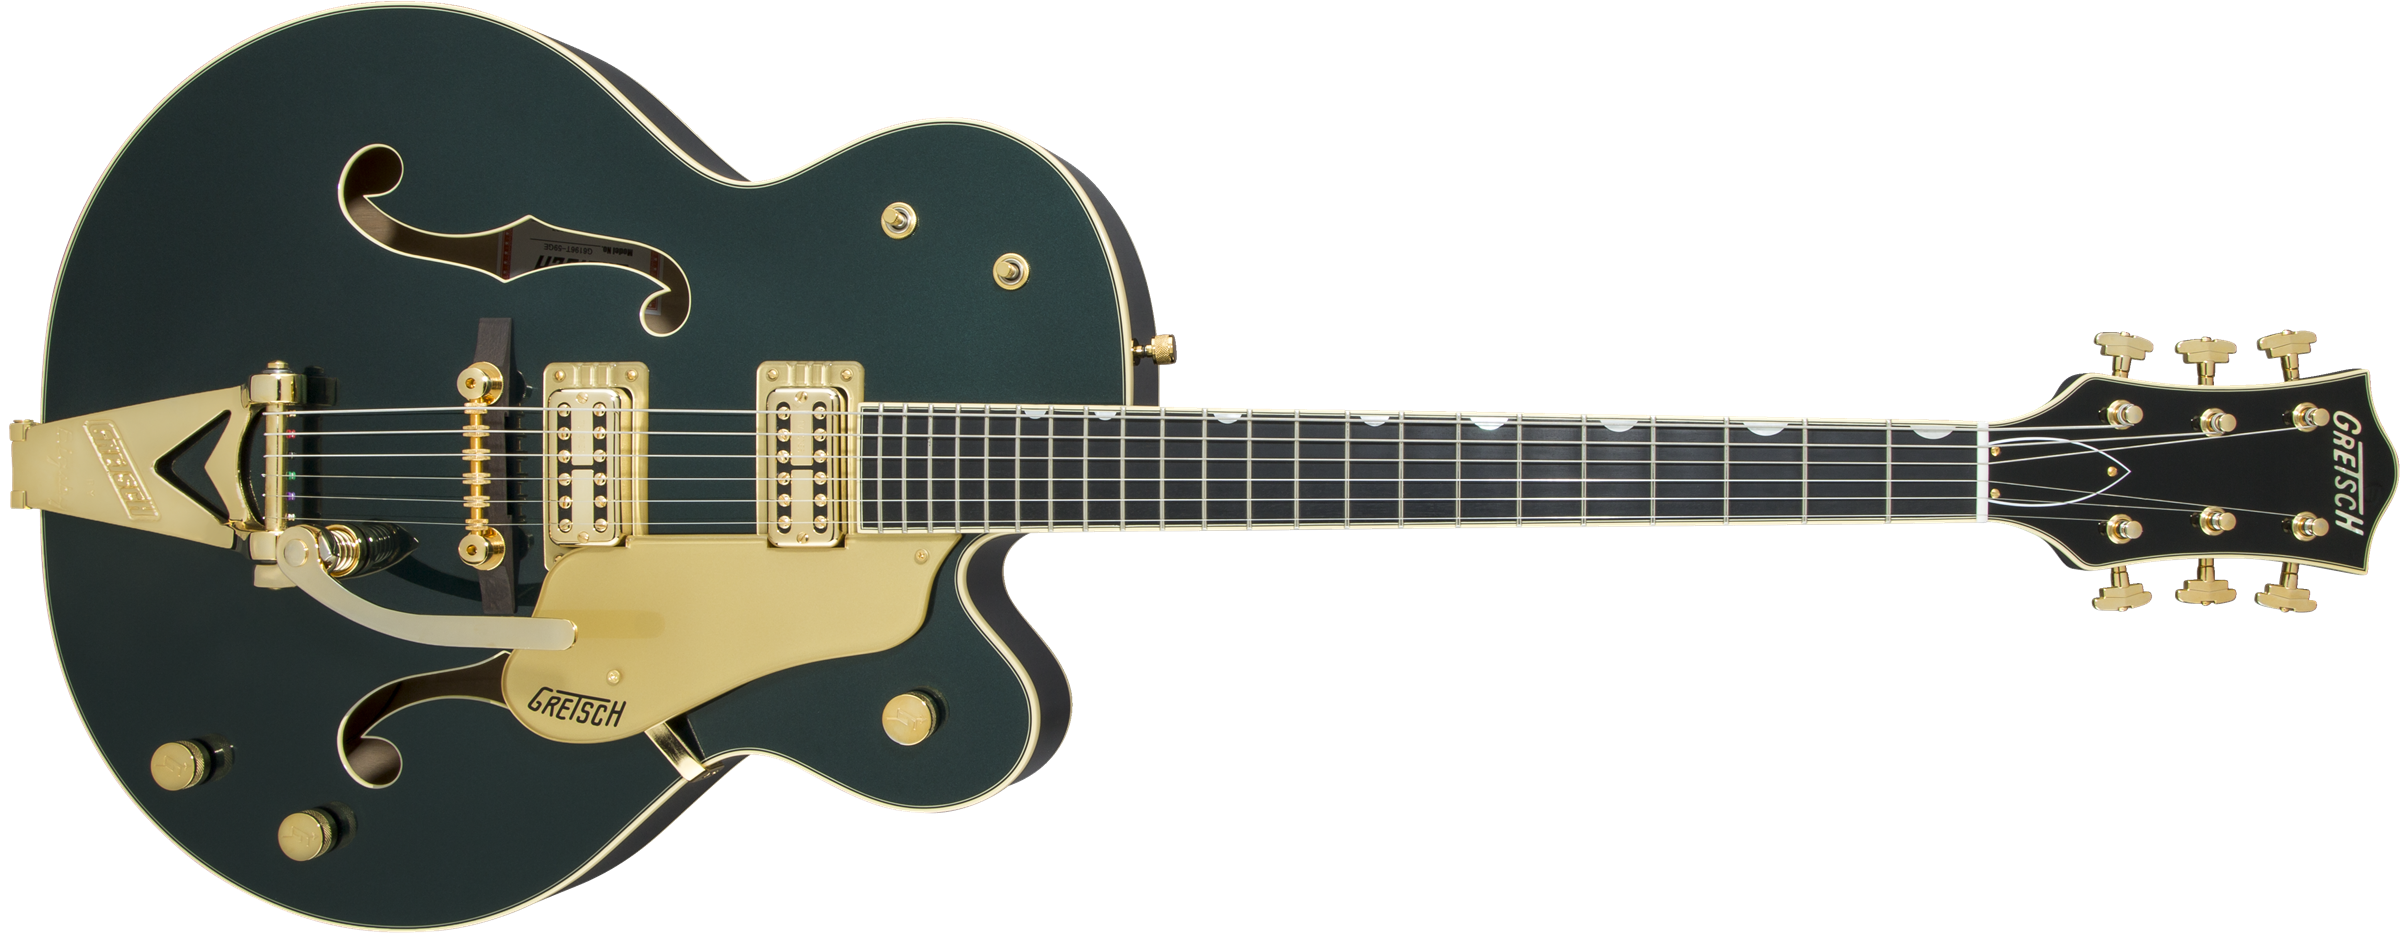 GRETSCH-G6196T-59-Vintage-Select-Edition-59-Country-Club-Hollow-Body-with-Bigsby-TV-Jones-Cadillac-Green-Lacquer-sku-571001300